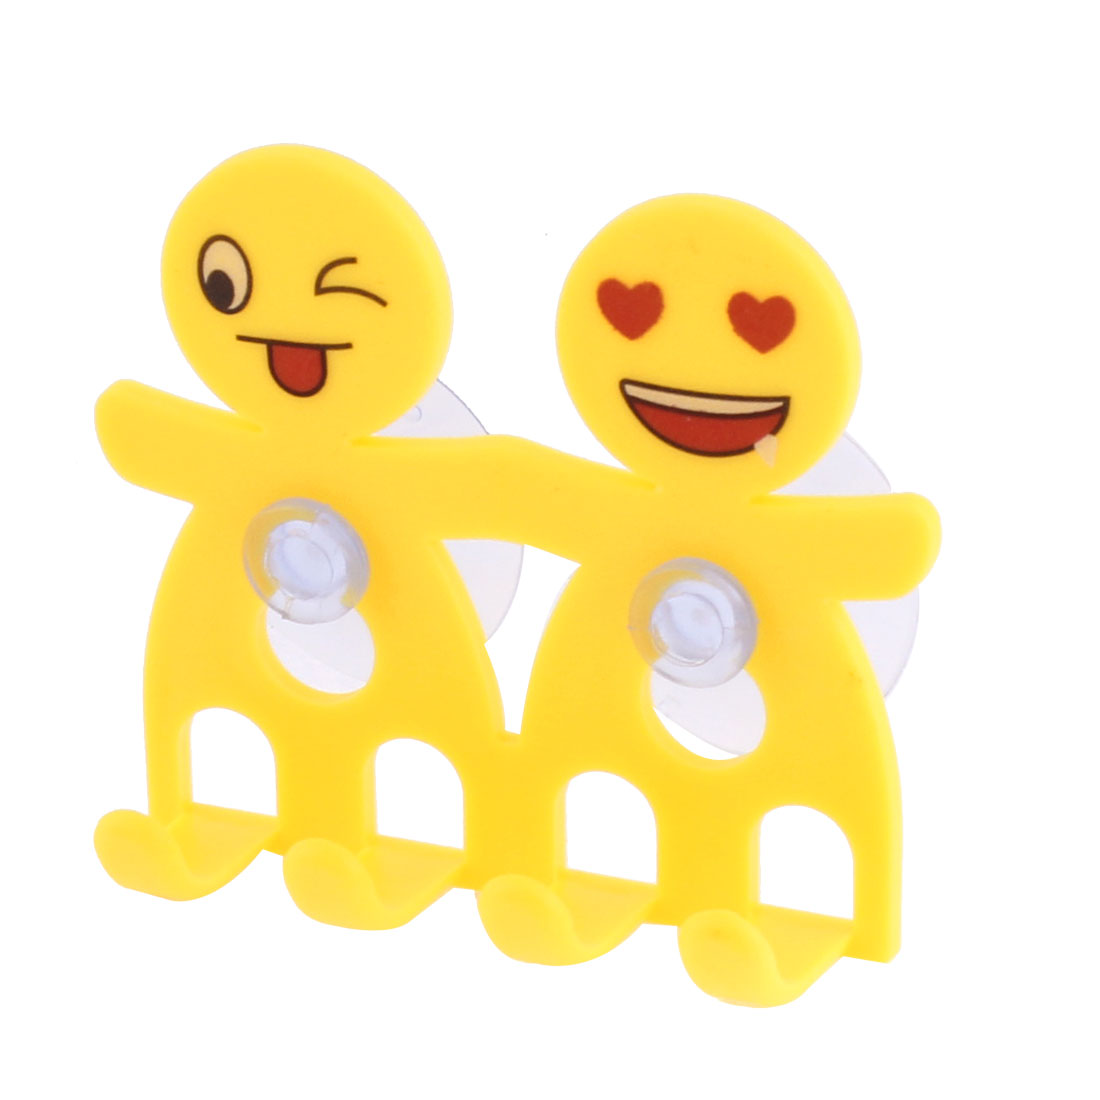 Home Suction Cup Toothbrush Toothpaste Holder Yellow